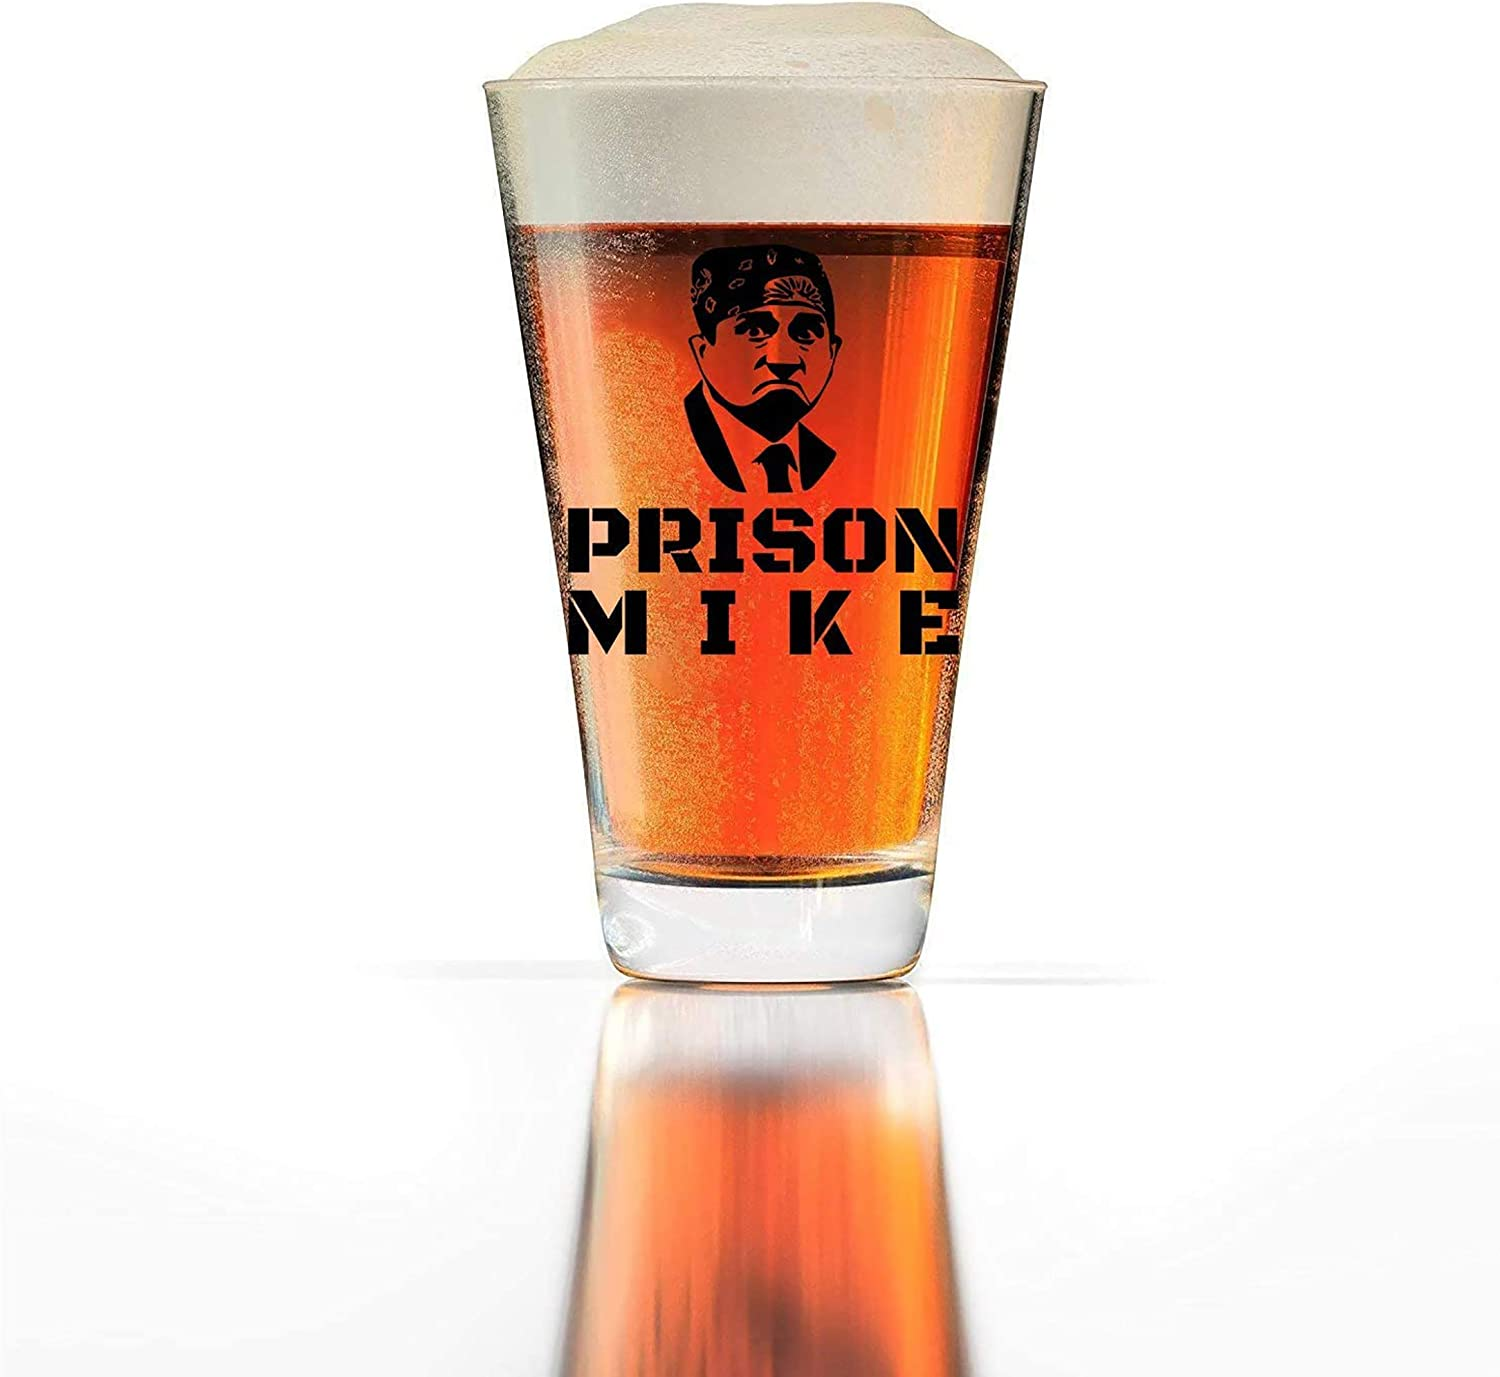 Prison Mike Beer Glass The Office Merchandise Michael Scott Funny Mug 16oz Pint Beer Glass